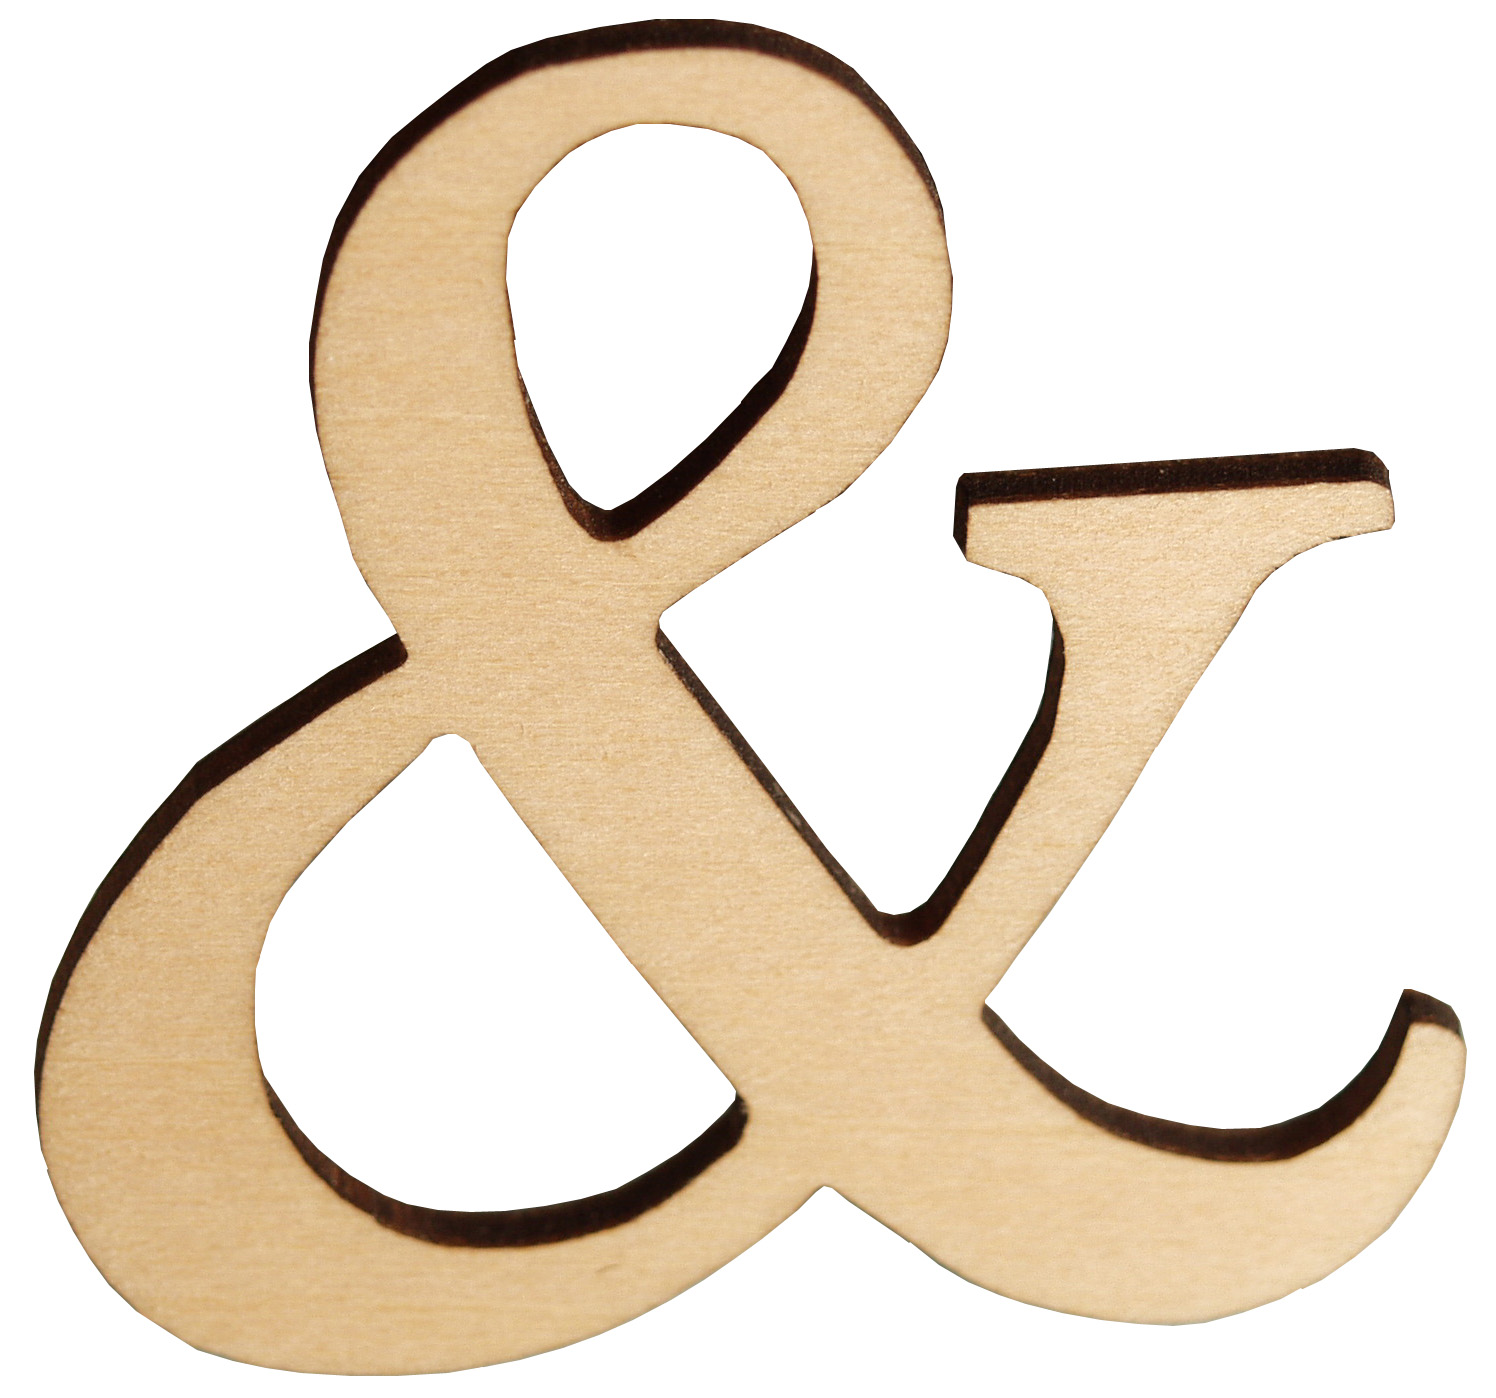 i talked about some products we have at walnut hollow and the differences and similarities i thought i would do that again this time with our letters